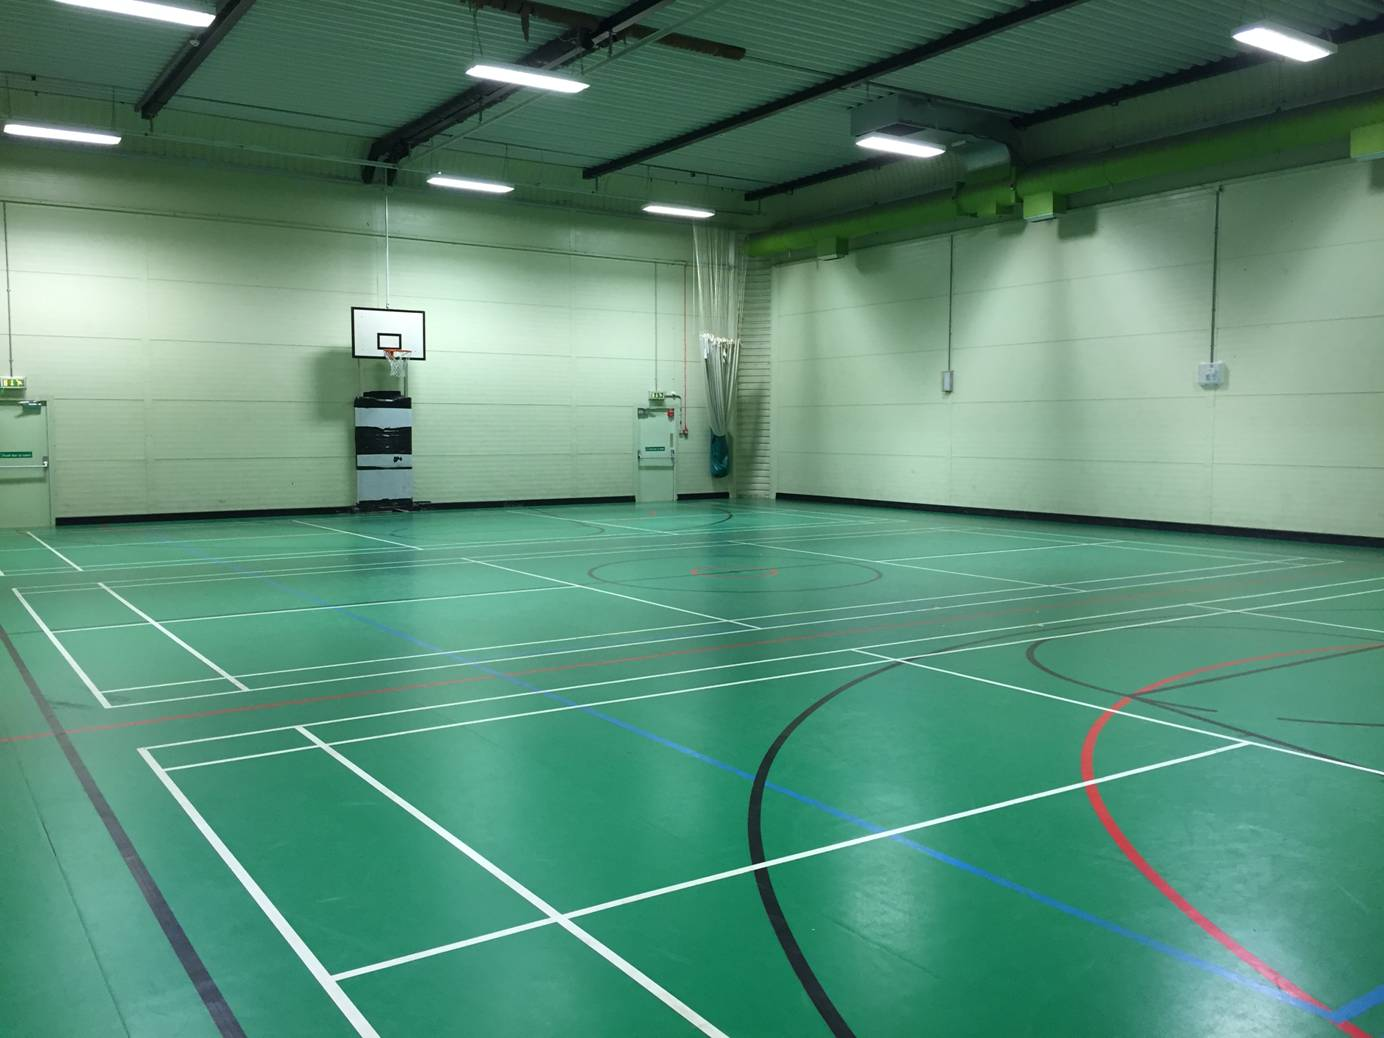 The Sports Hall at Hursley Park where the Fair will be held. Image via Glenn Salter.